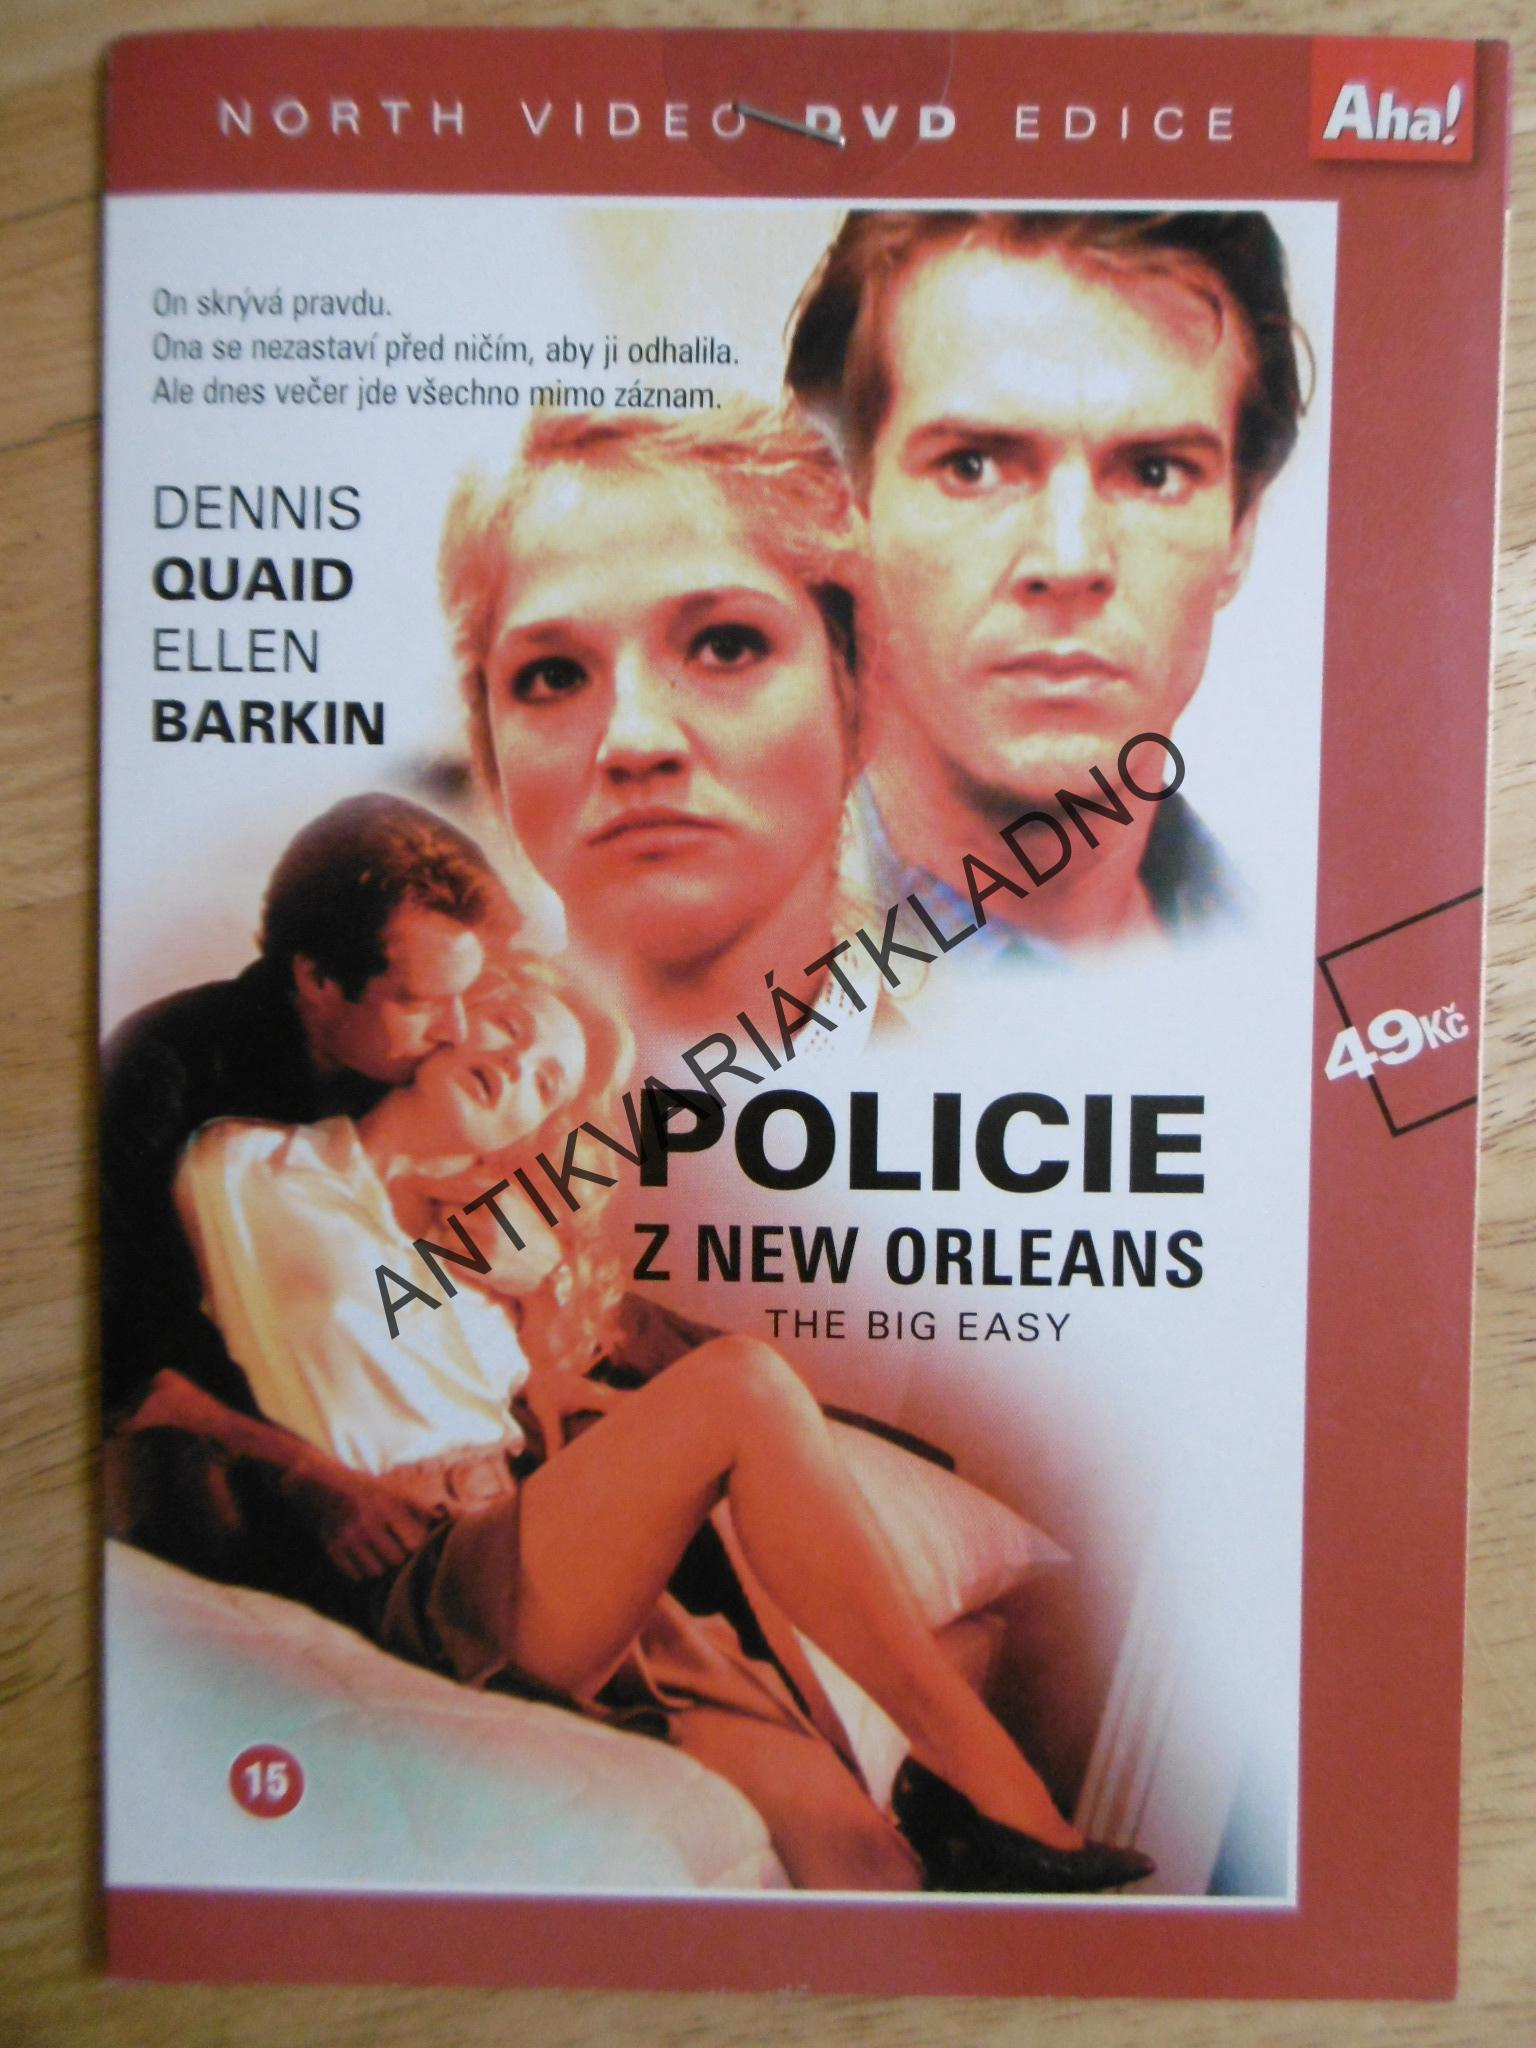 POLICIE NEW ORLEANS, DVD FILM